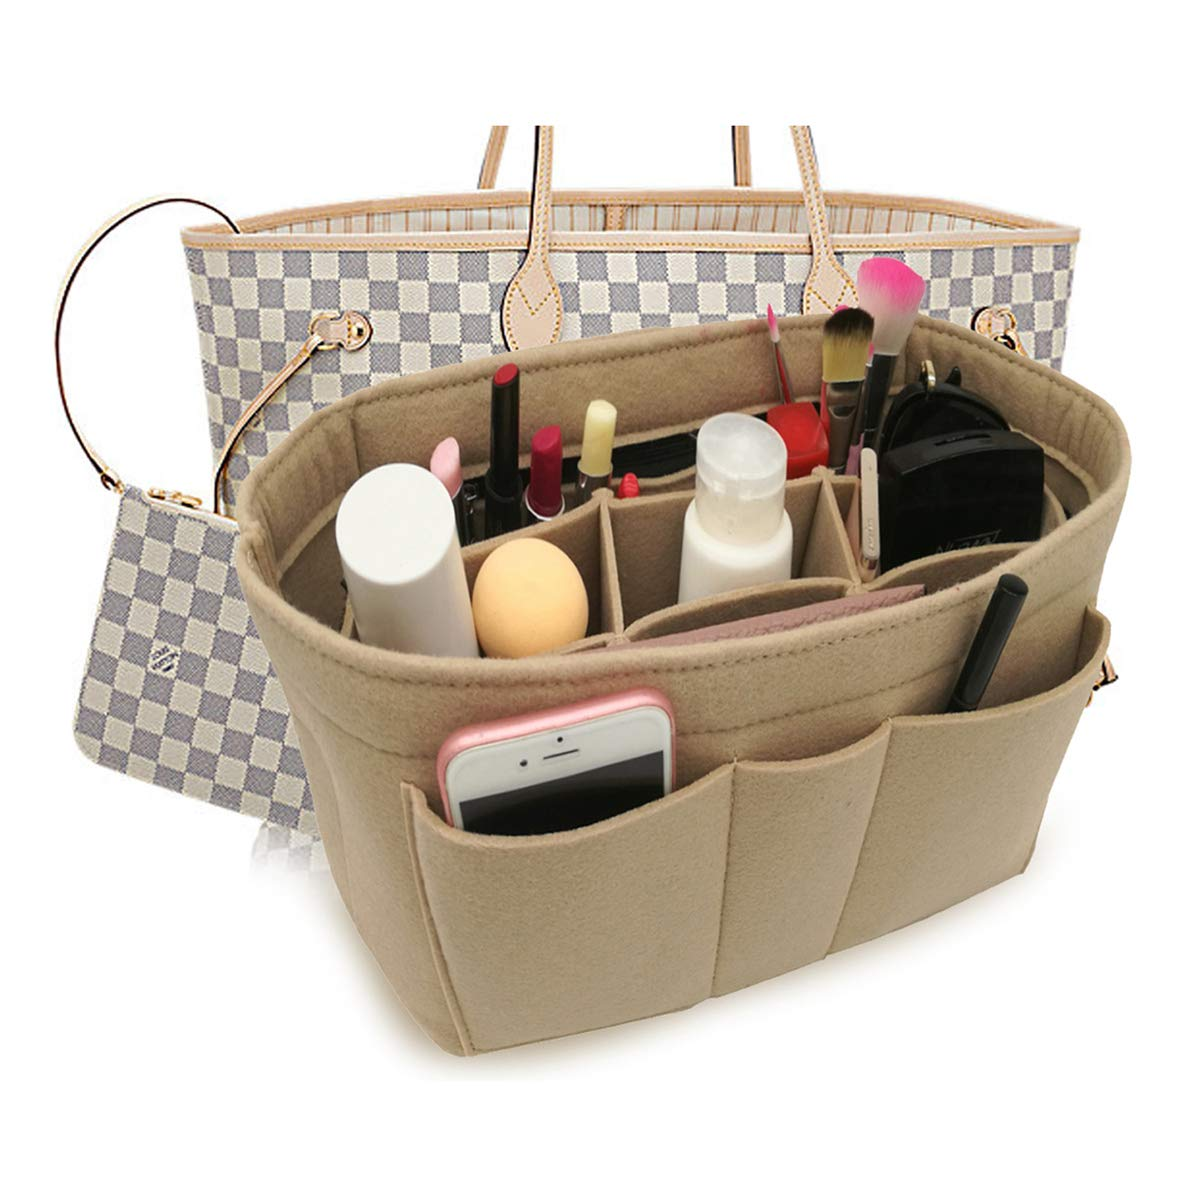 71b94fb552ac Amazon.com: Felt Insert Fabric Purse Organizer Bag, Bag Insert In Bag with  Zipper Inner Pocket: Clothing